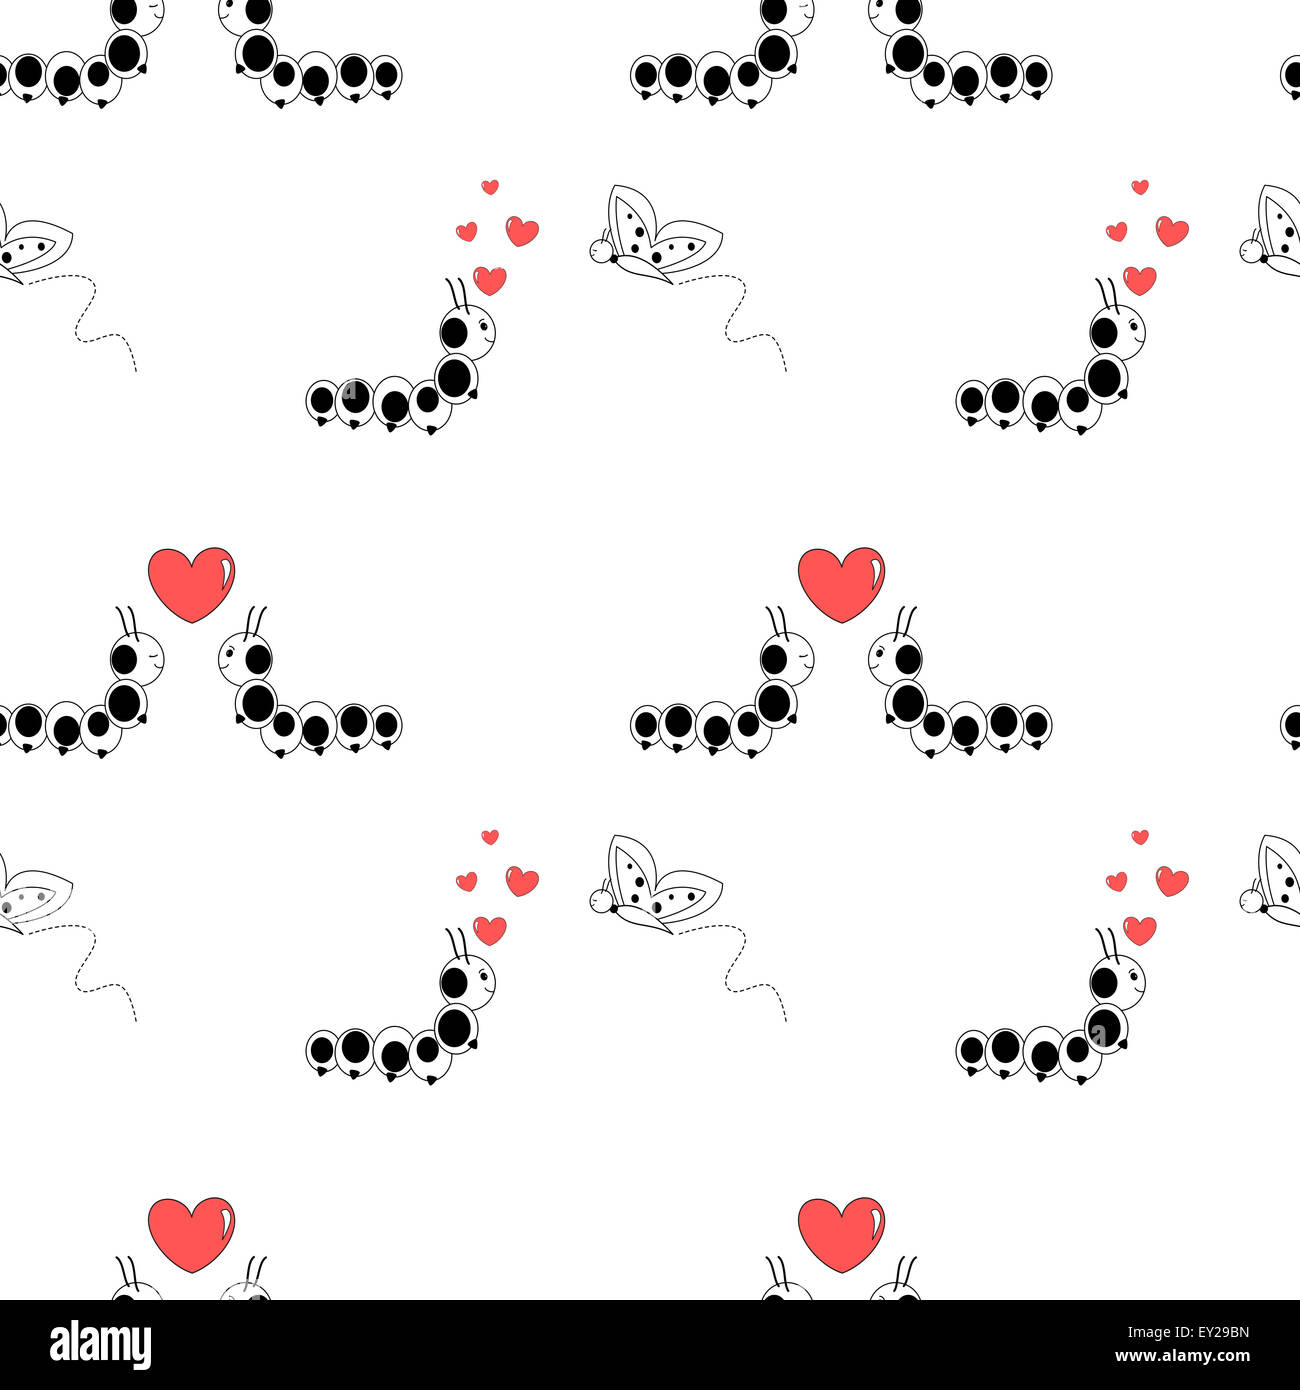 Cartoon Caterpillar Love Cycle Cute Romantic Seamless Pattern Stock